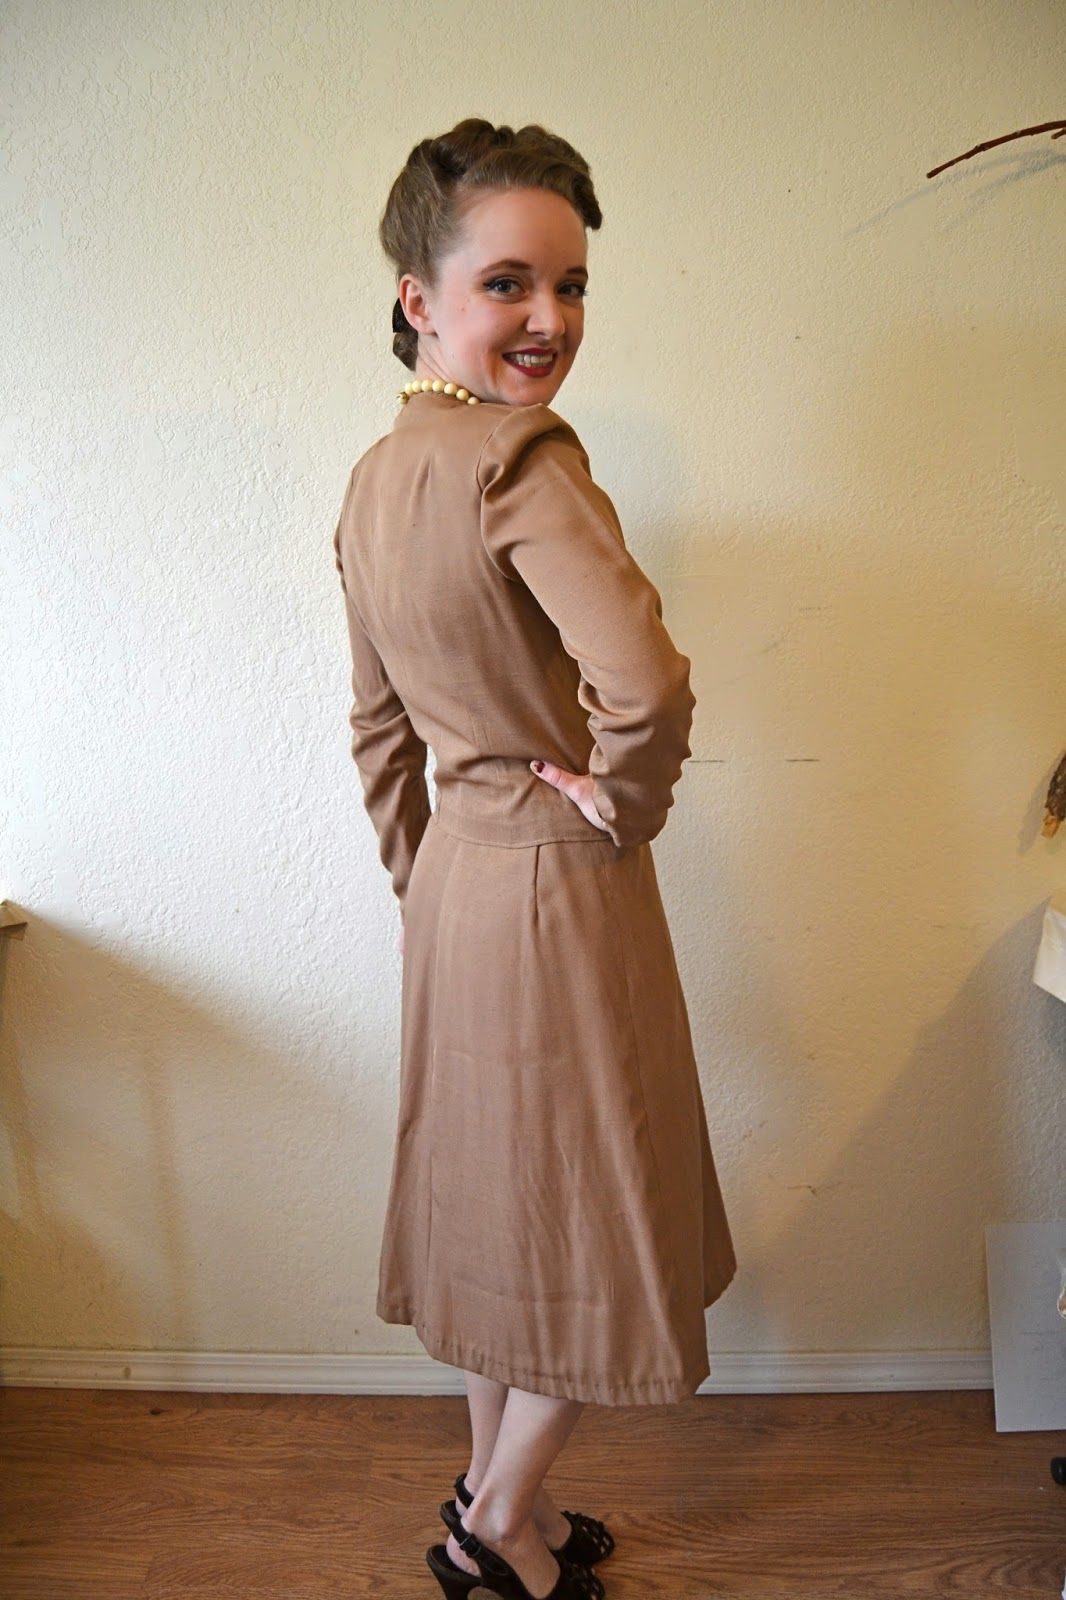 Flashback Summer:  Sew For Victory 2.0 2014- 1940s mail order 3700 suit and sundress